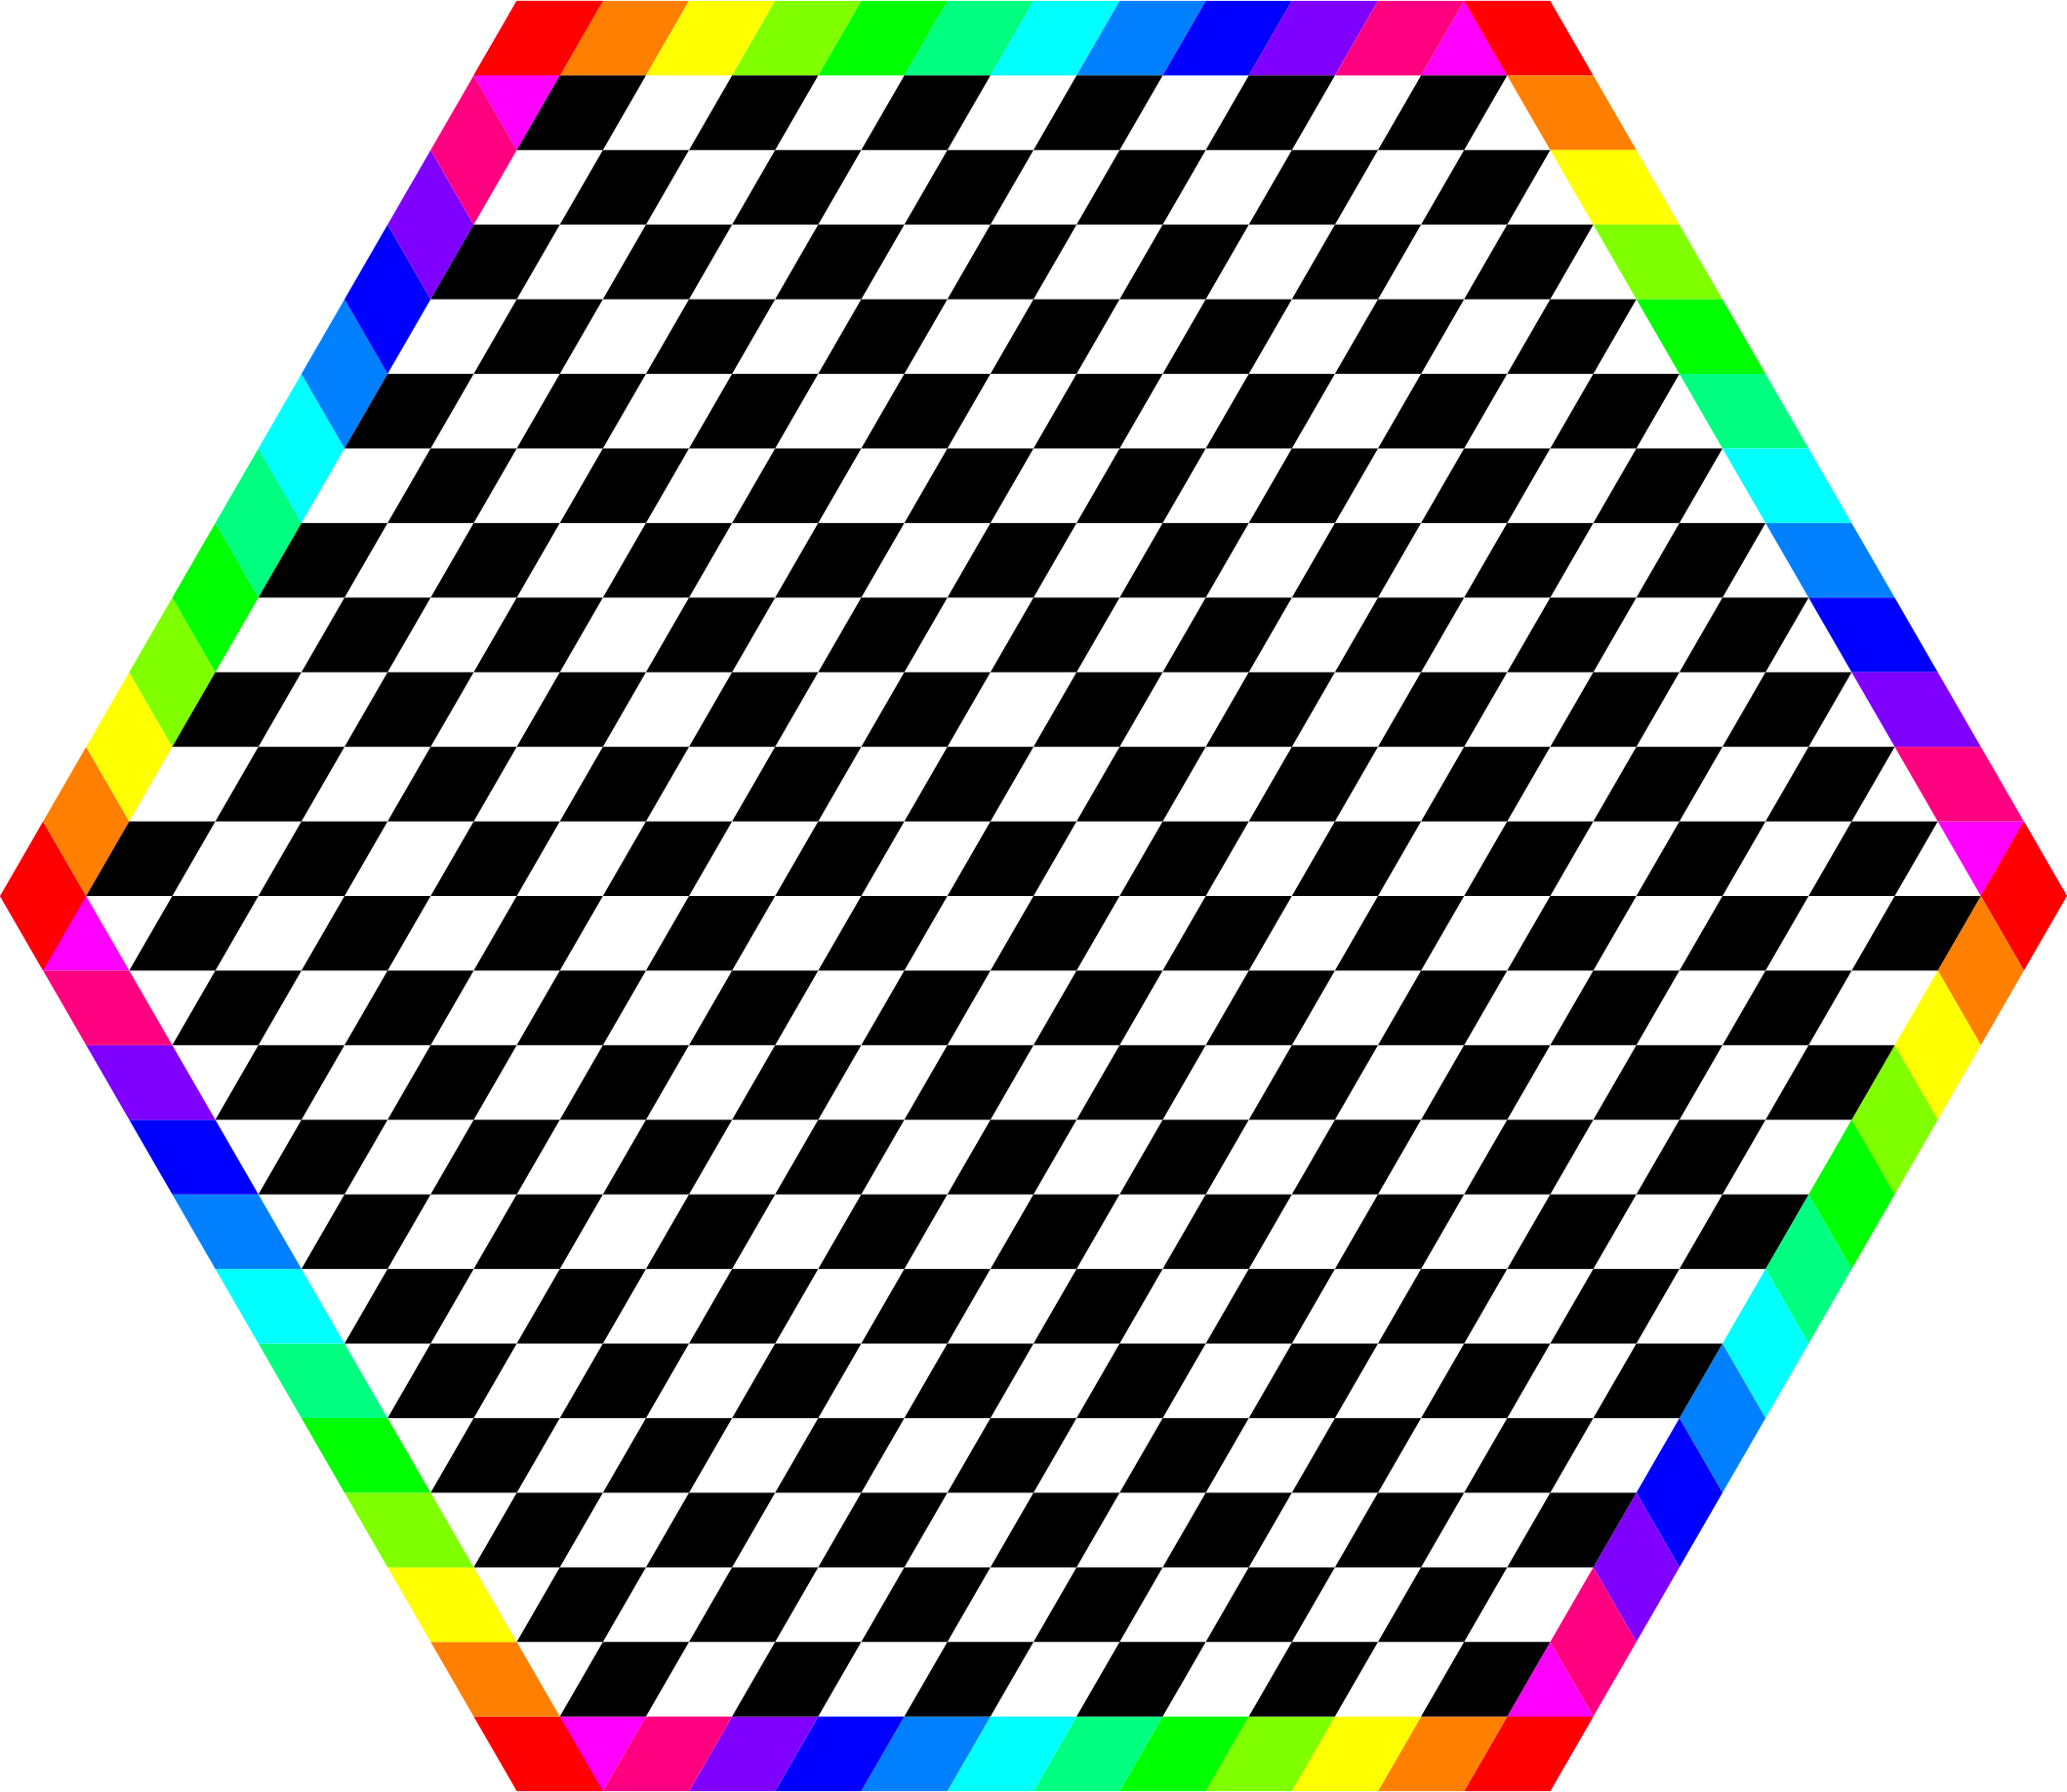 Rainbow Hexagon Ring with chessboard inside by 10binary